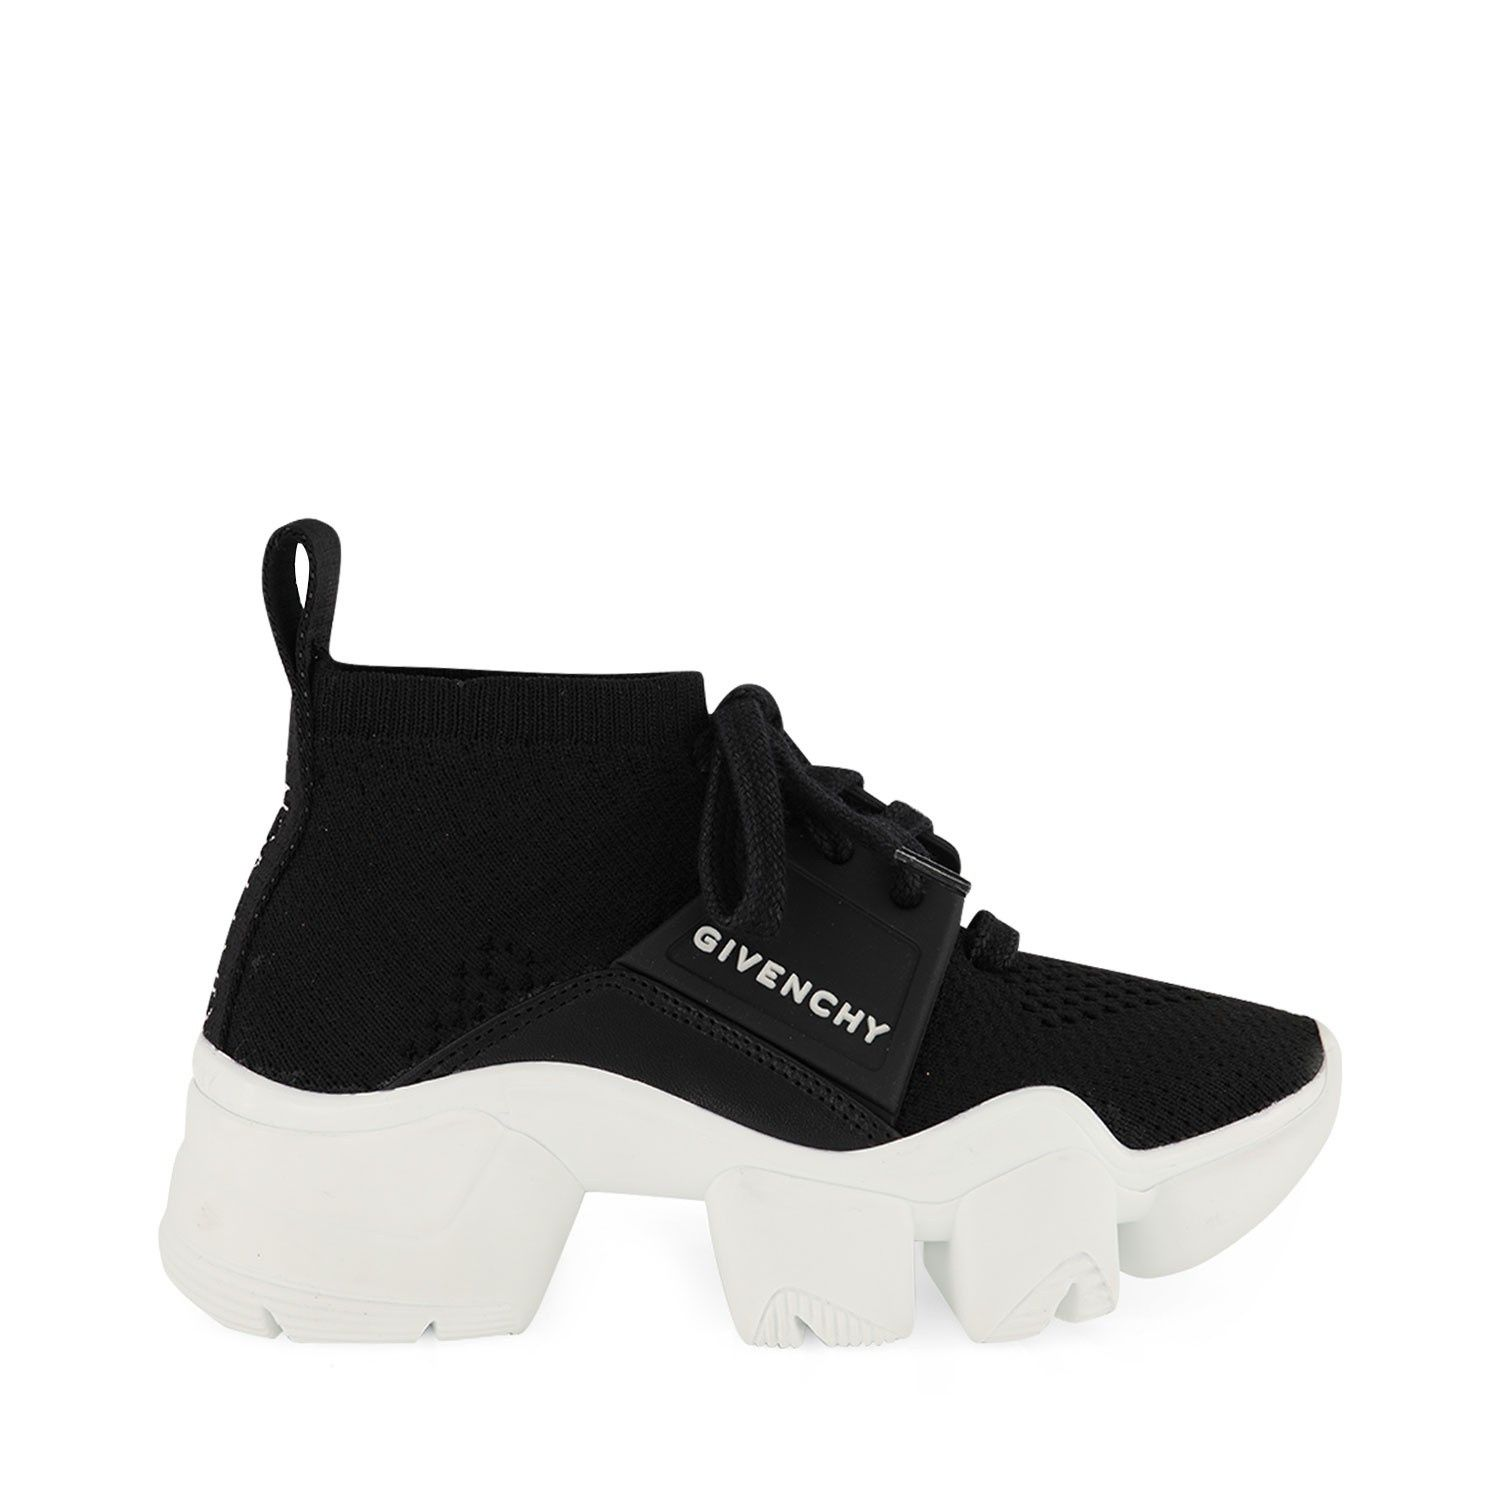 Picture of Givenchy H29J33 kids sneakers black